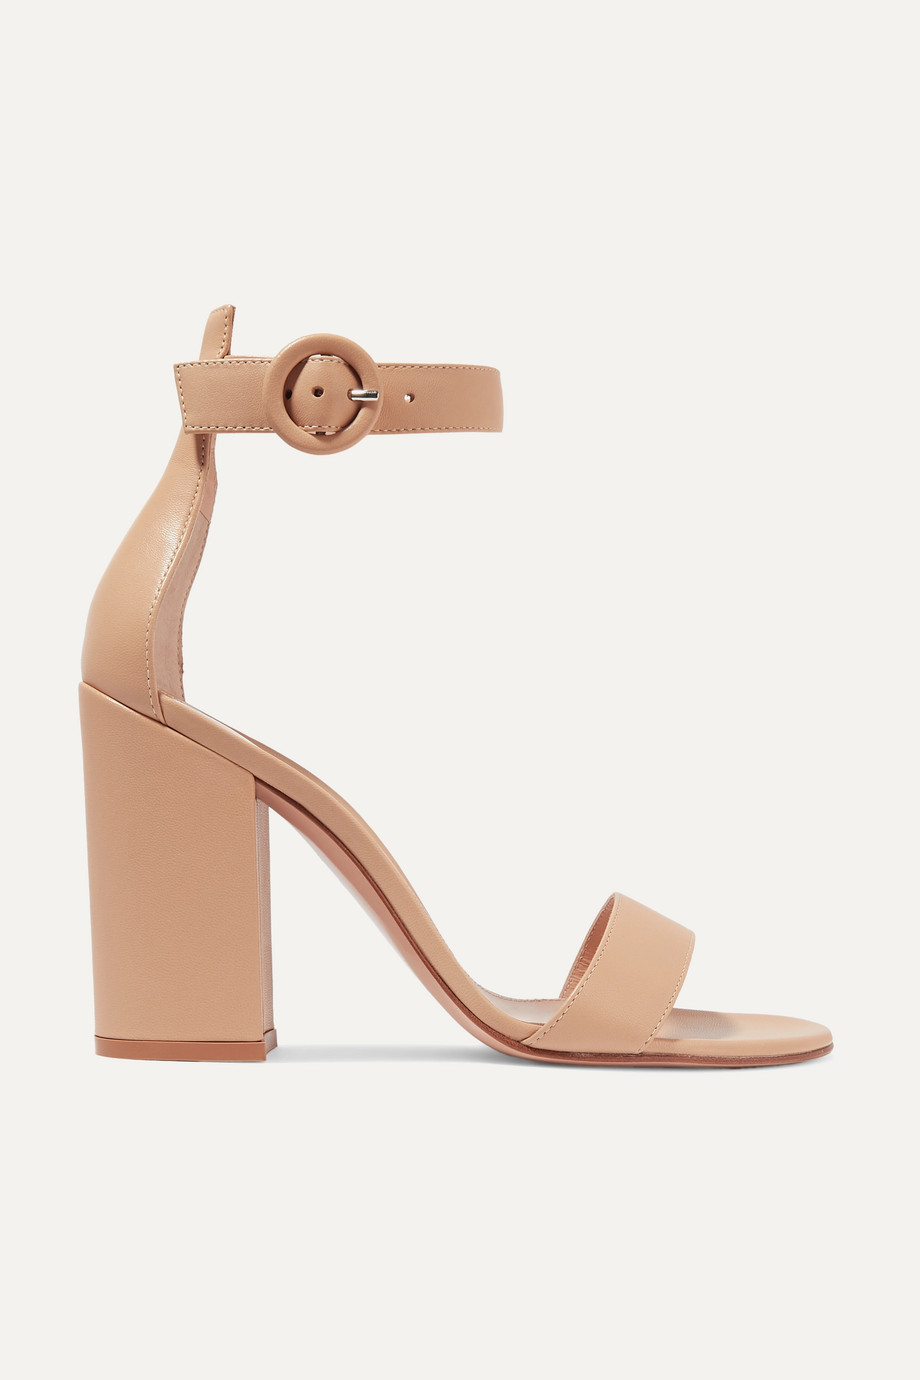 Gianvito Rossi Versilia 100 leather sandals